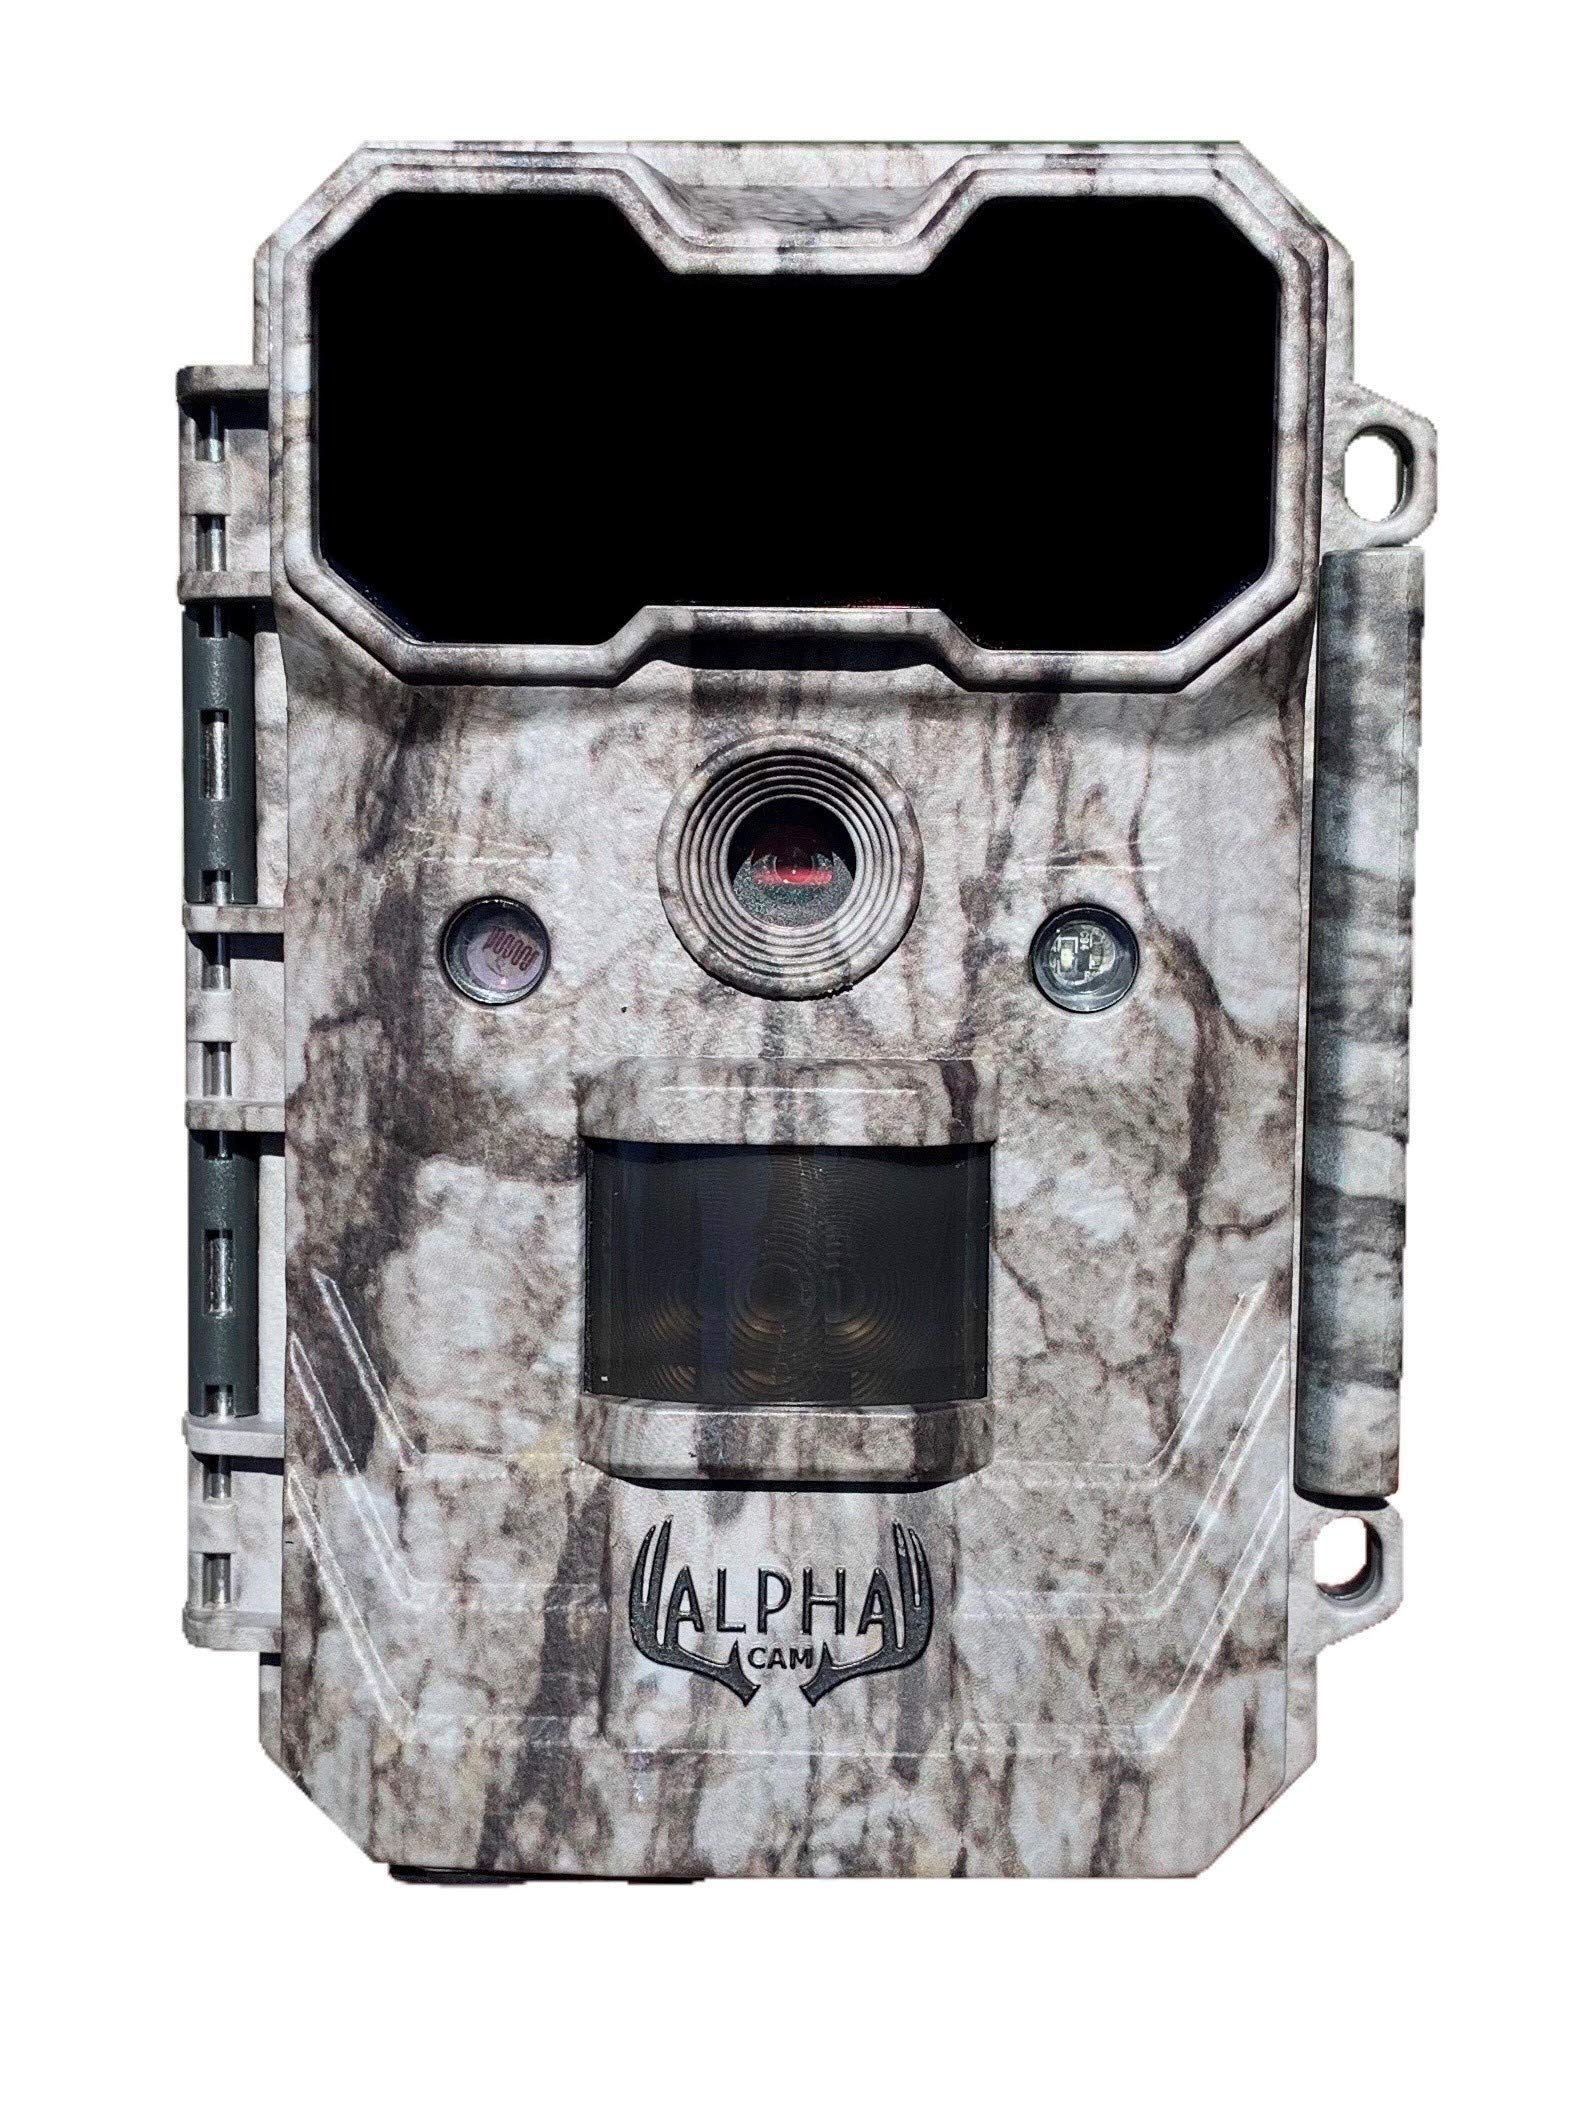 Alpha Cam Hunting Trail Camera 20MP 1080p 30fps Waterproof Scouting Cam with Ultra Fast Trigger Speed and Recovery Rate 2.4'' Color Viewscreen 48 IR LEDs